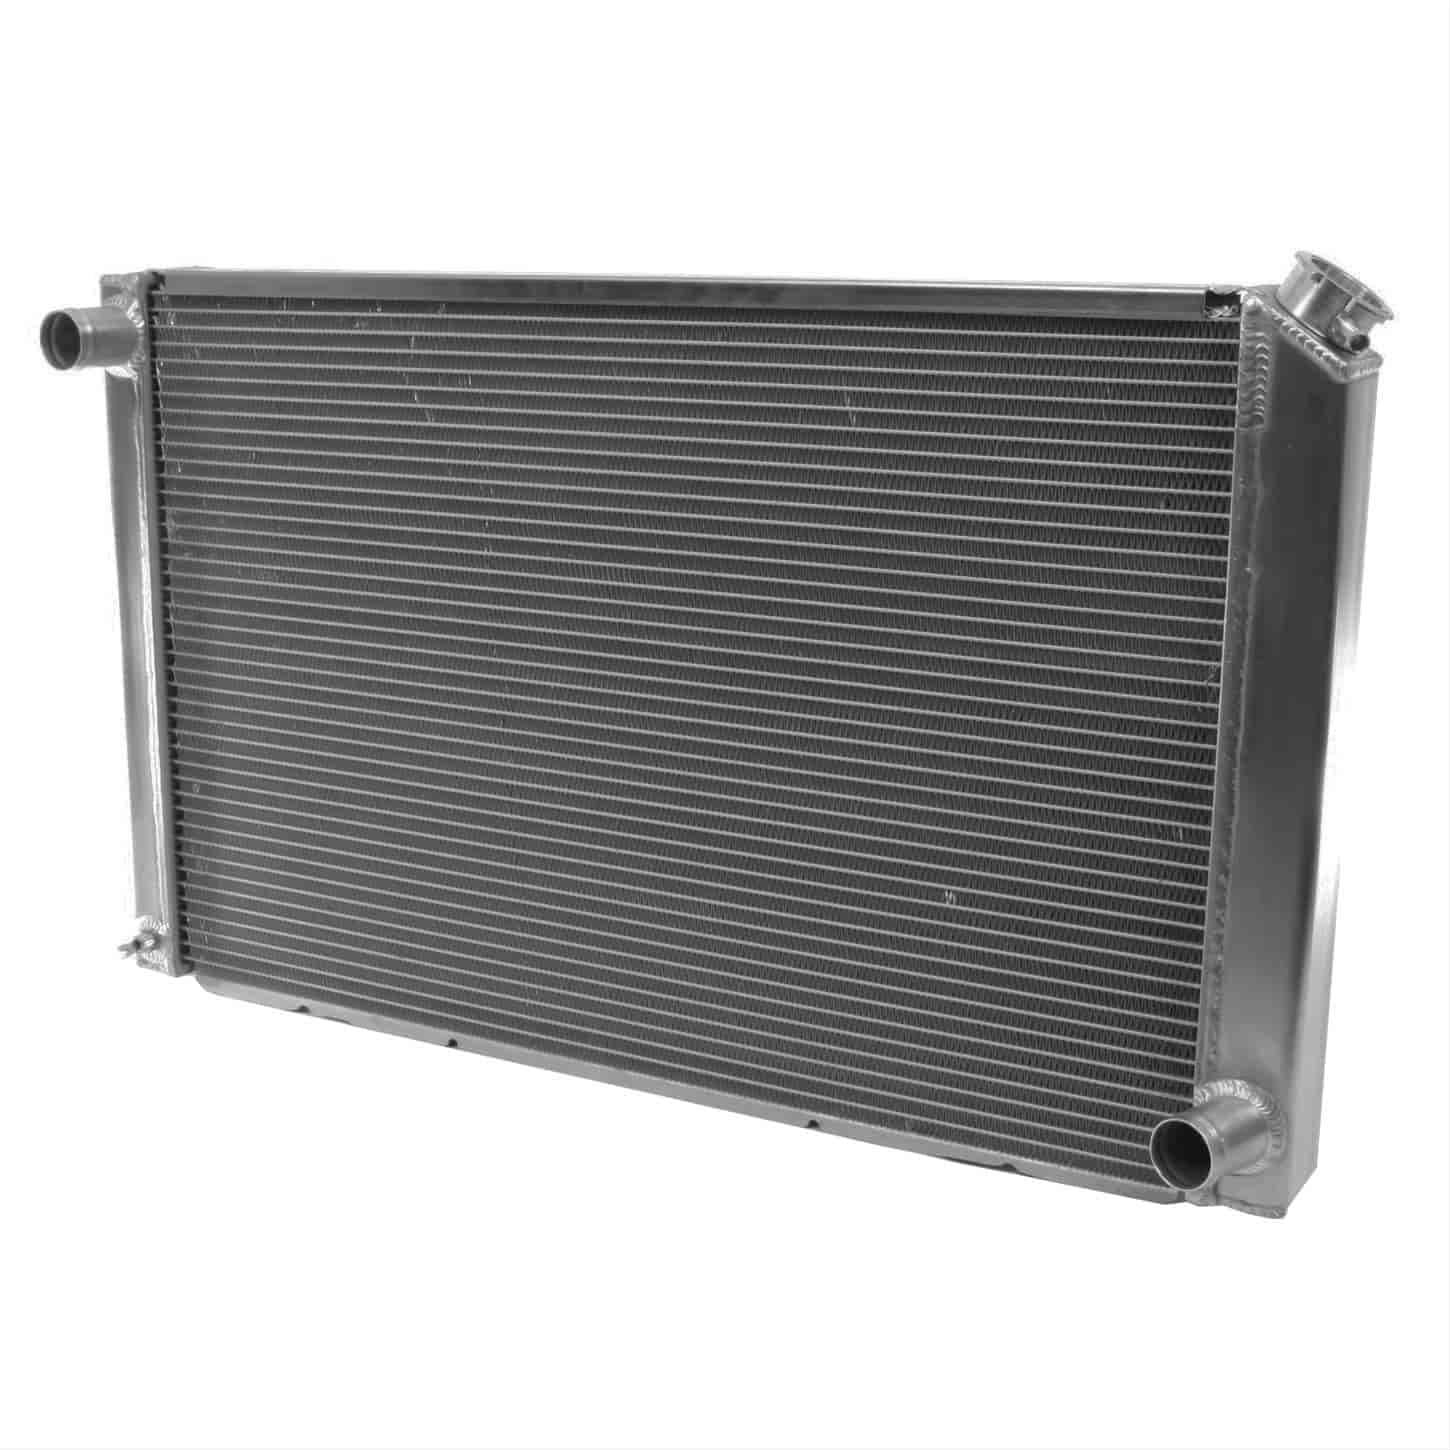 Be Cool Radiators 10010 - Be Cool Aluminator Series Custom Fit Aluminum Radiators